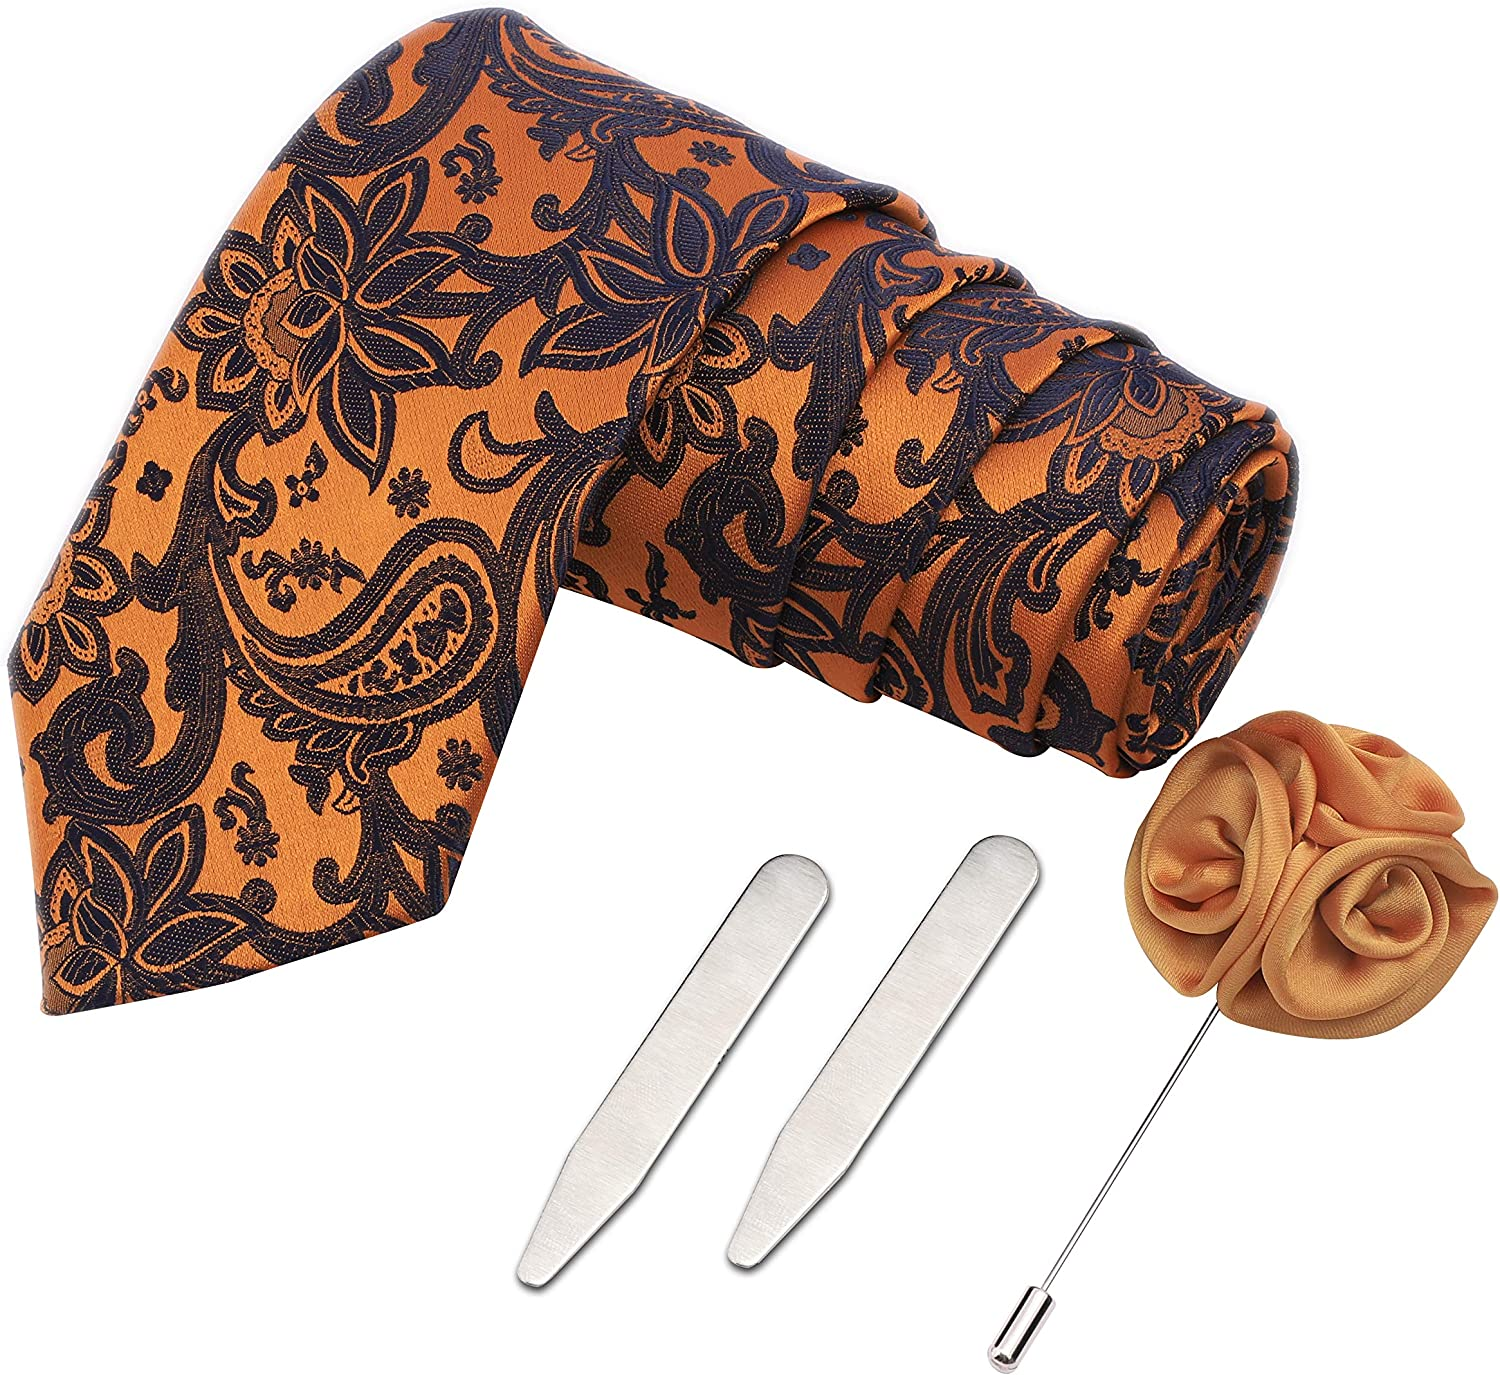 Peluche The Red Knot Gift Box Includes 1 Neck Tie, 1 Brooch & 1 Pair of Collar Stays for Men